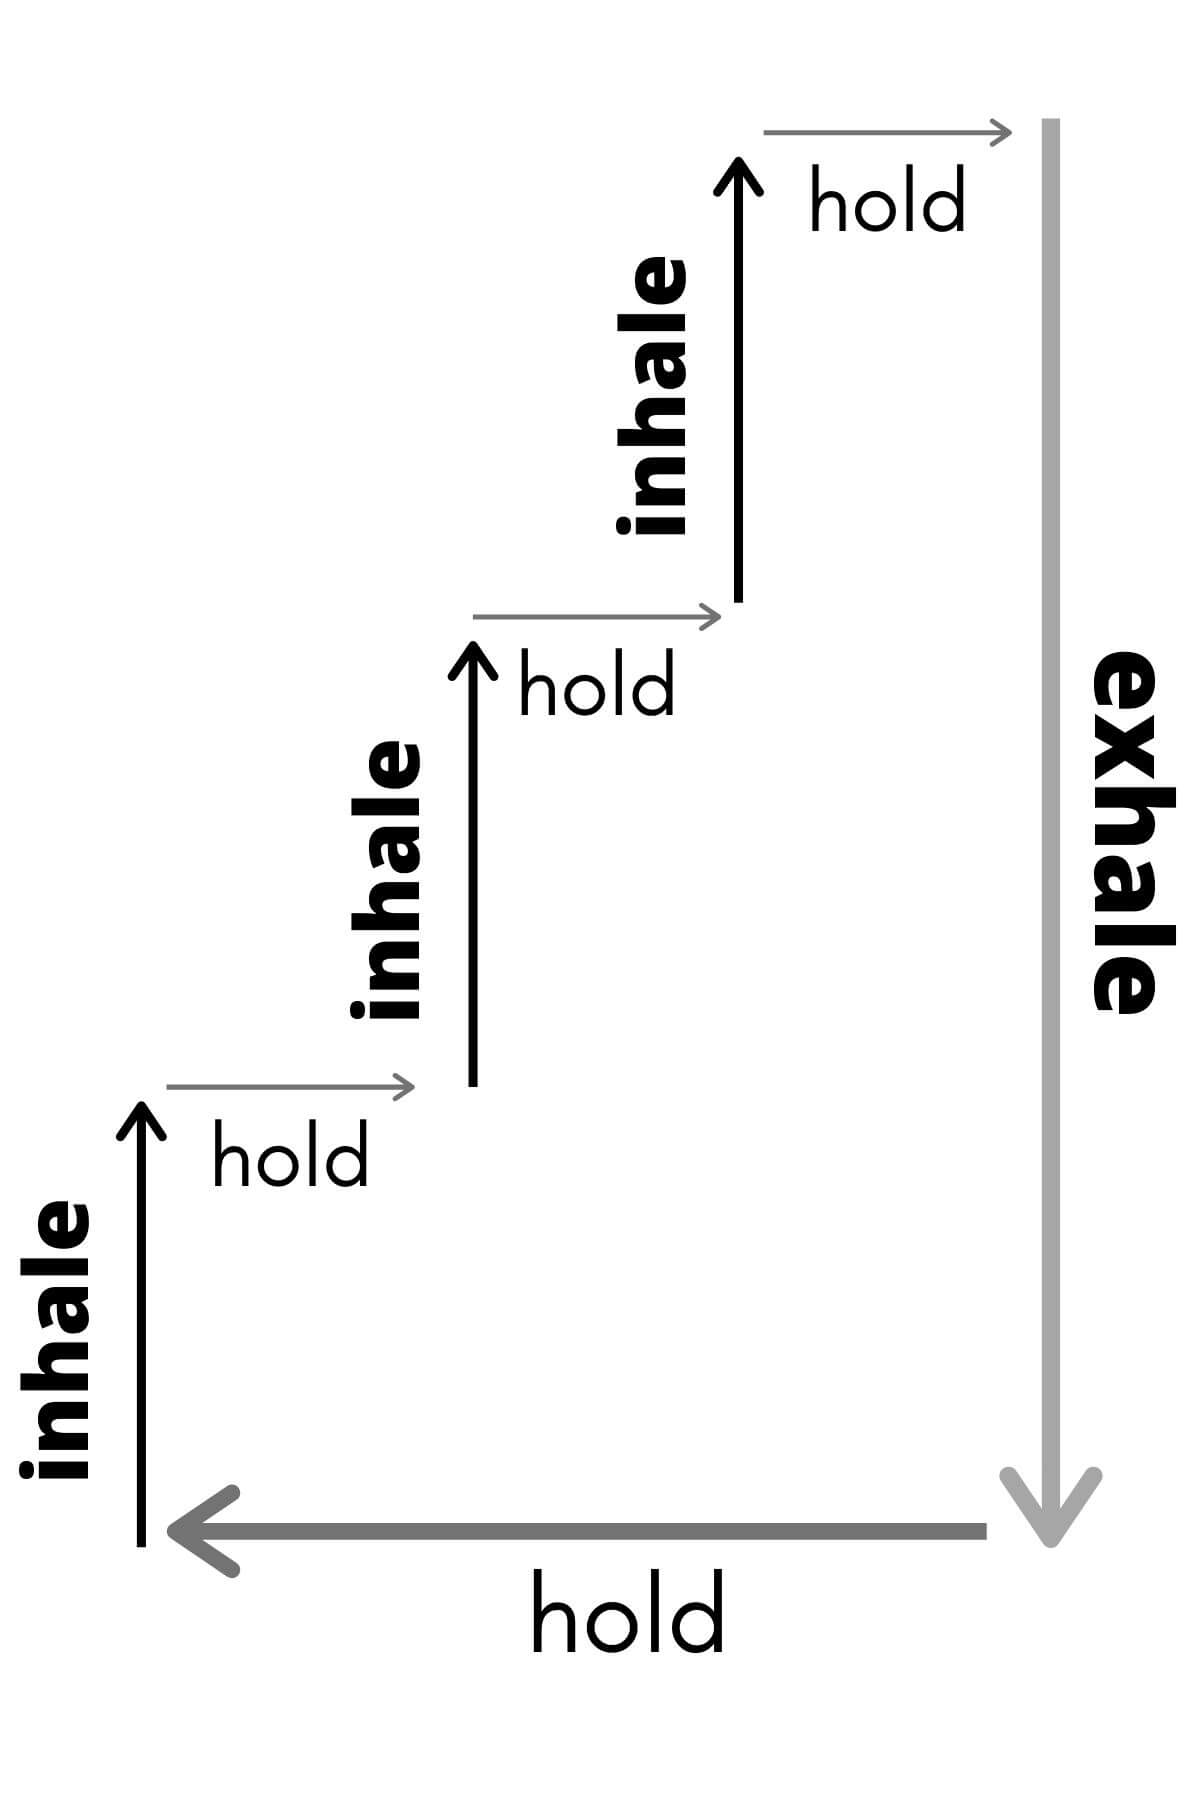 From the left, an arrow pointing up reading 'inhale,' leading to a short arrow pointing right reading 'hold,' leading to another arrow pointing up reading 'inhale,' to another pointing right reading 'hold,' continuing in a stairstep pattern until the topmost arrow pointing right reading 'hold,' leads to a long arrow pointing all the way down reading 'exhale,' and a long arrow on the bottom pointing left reading 'hold,' making a continuous loop around the page of white.